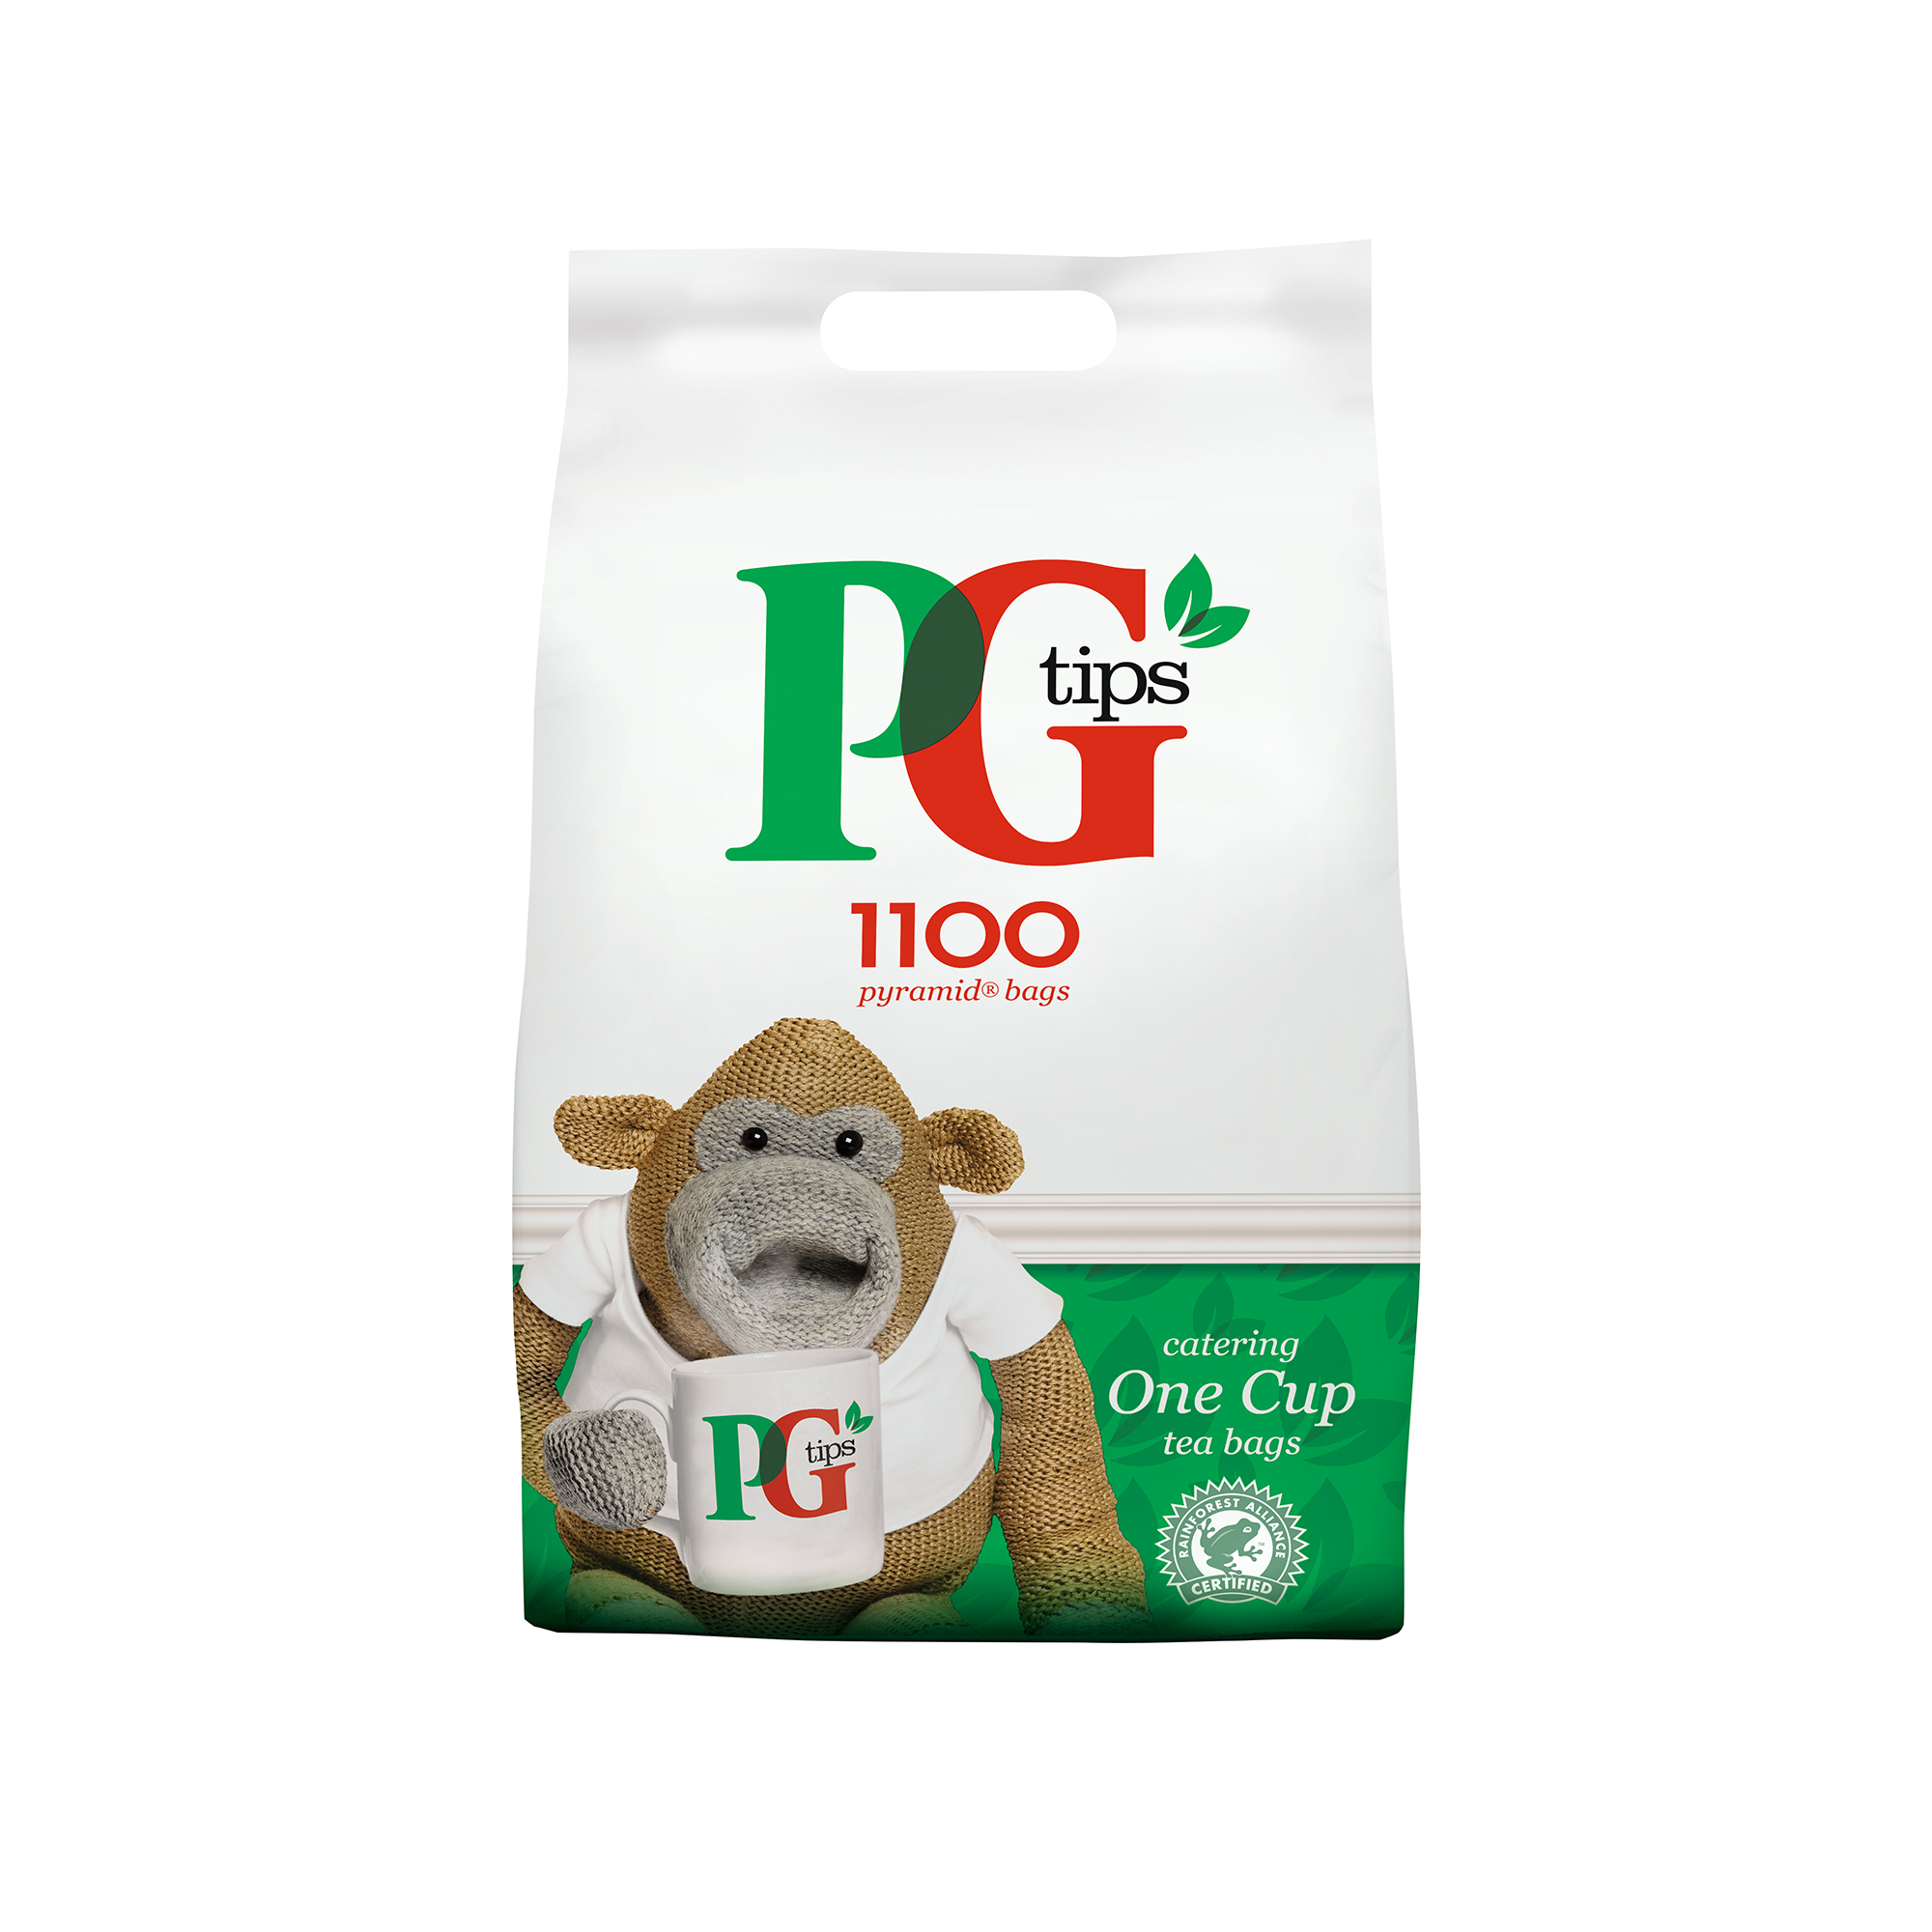 PG Tips Tea Bags Pyramid 1 Cup Ref 67395661 Pack 1100